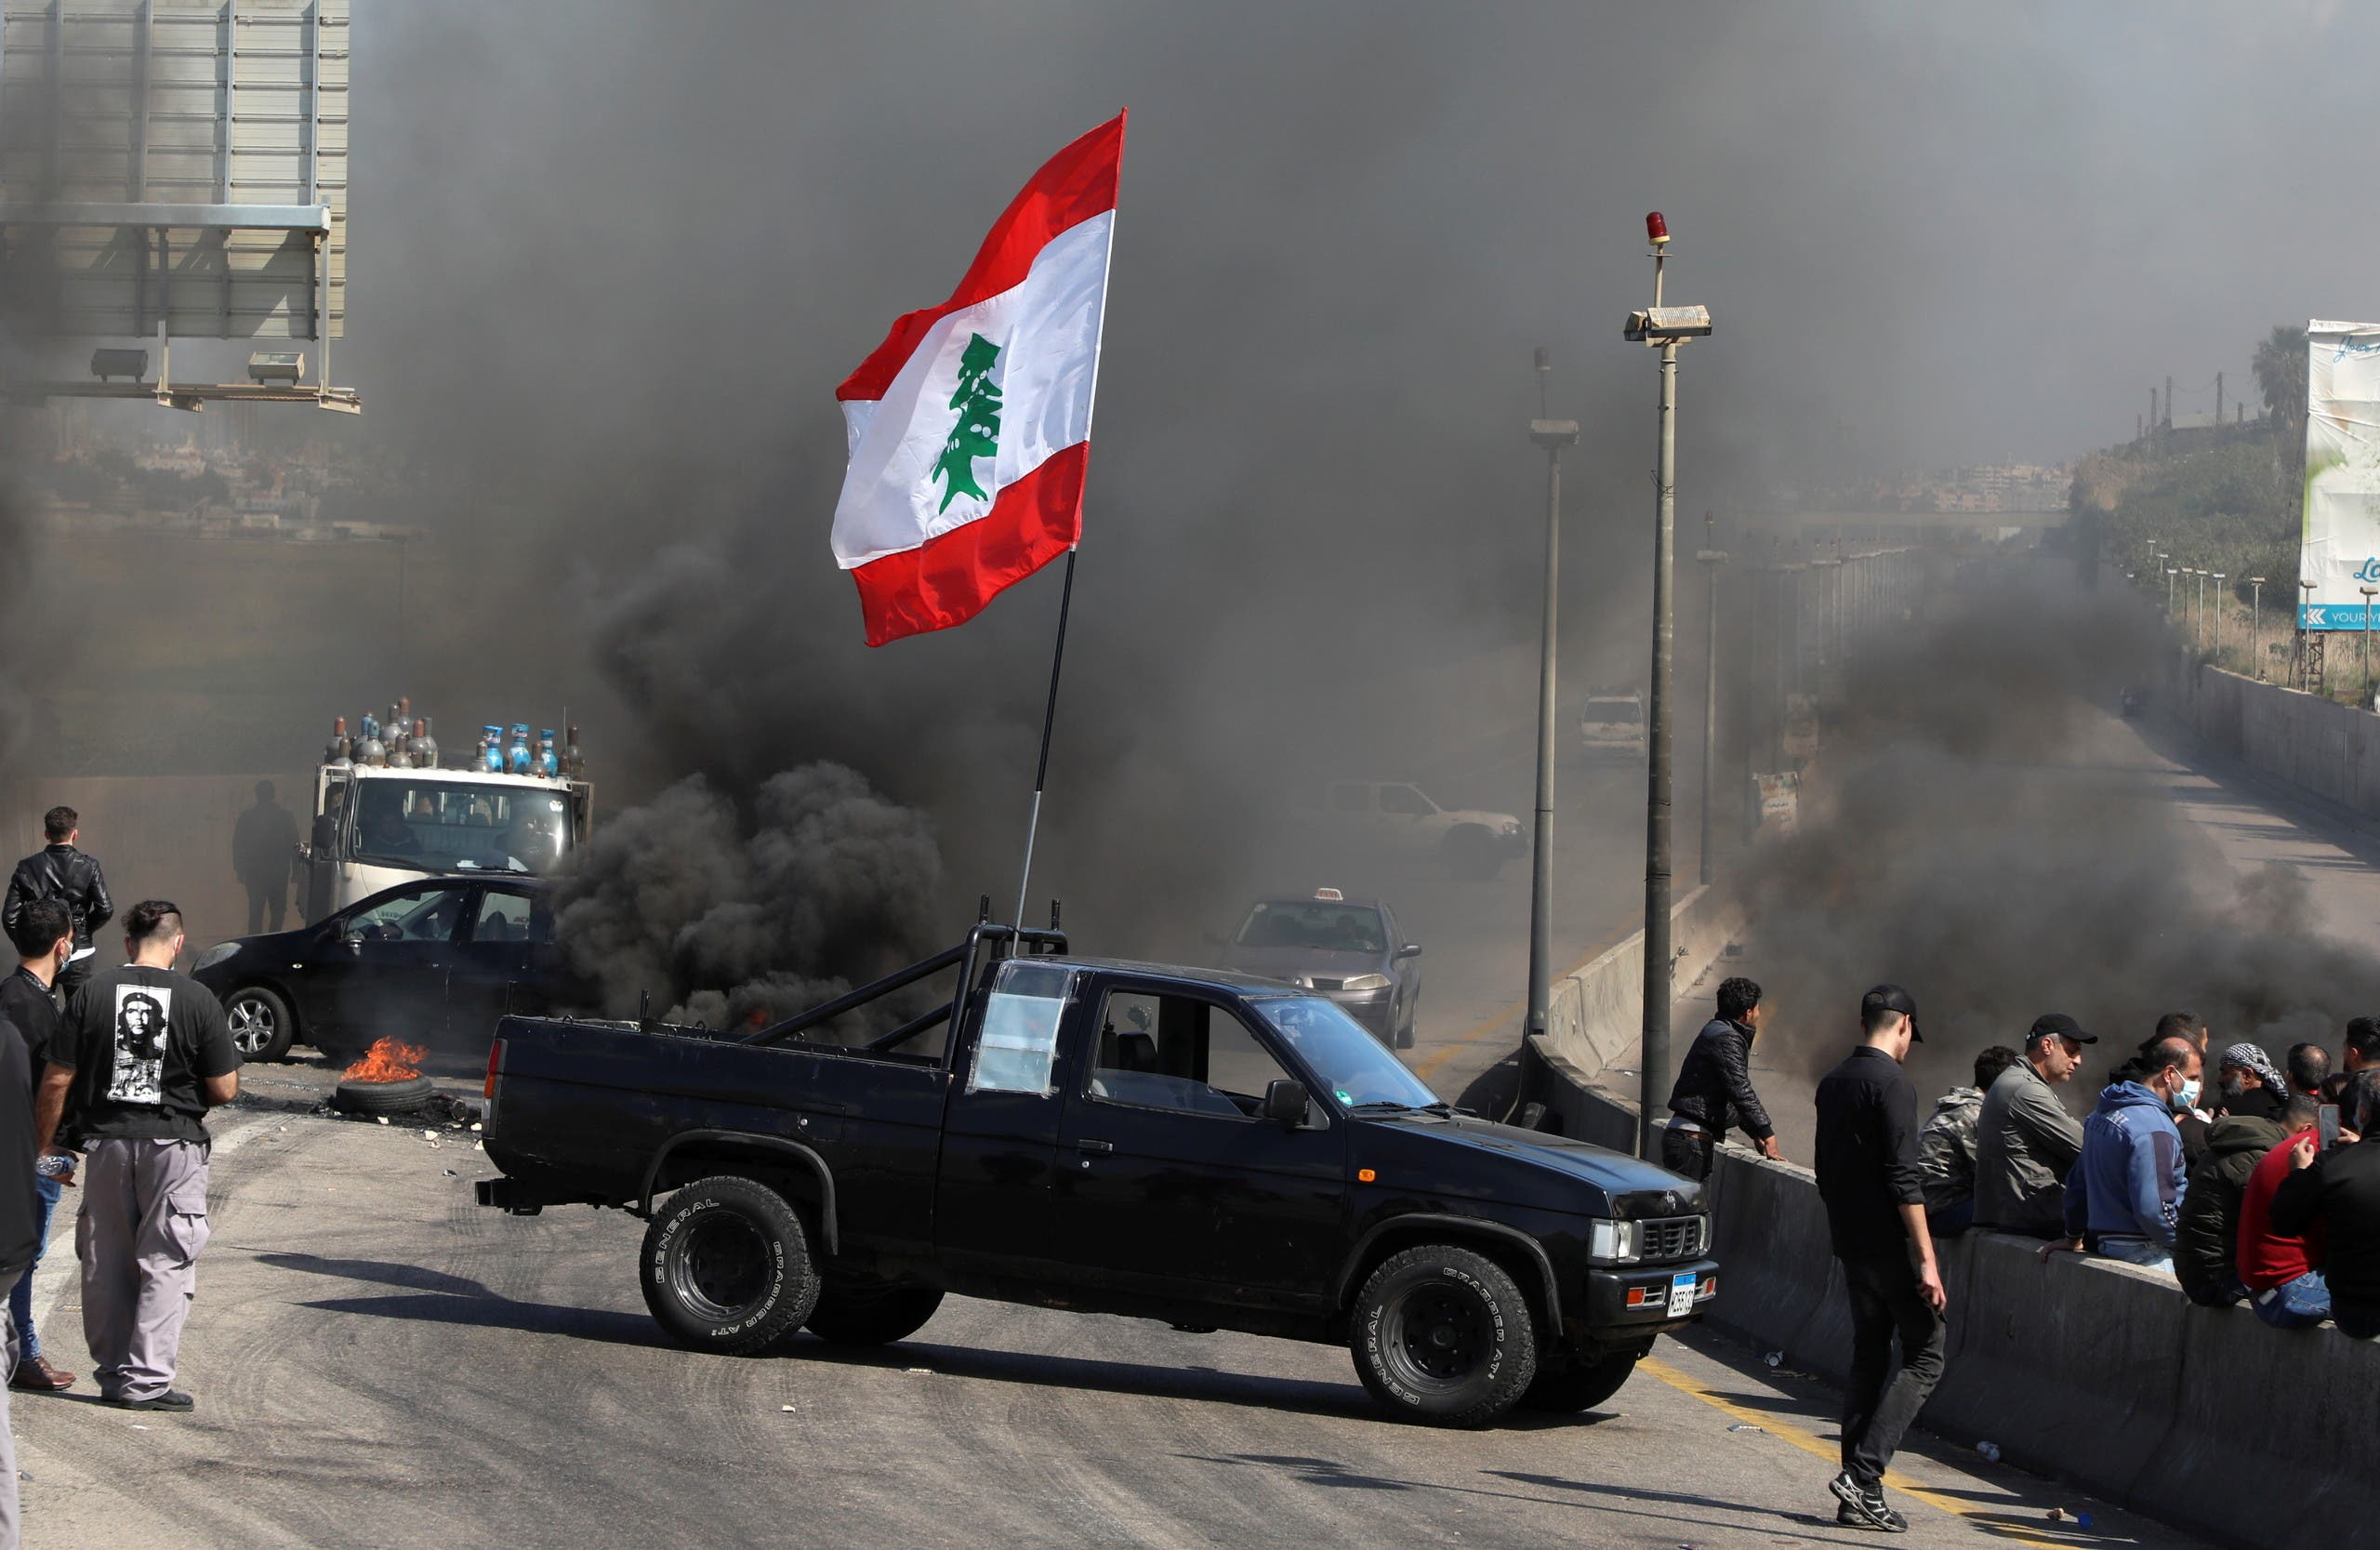 A vehicle blocks a road during a protest against the fall in Lebanese pound currency and mounting economic hardships in Khaldeh, Lebanon March 8, 2021. (Reuters)